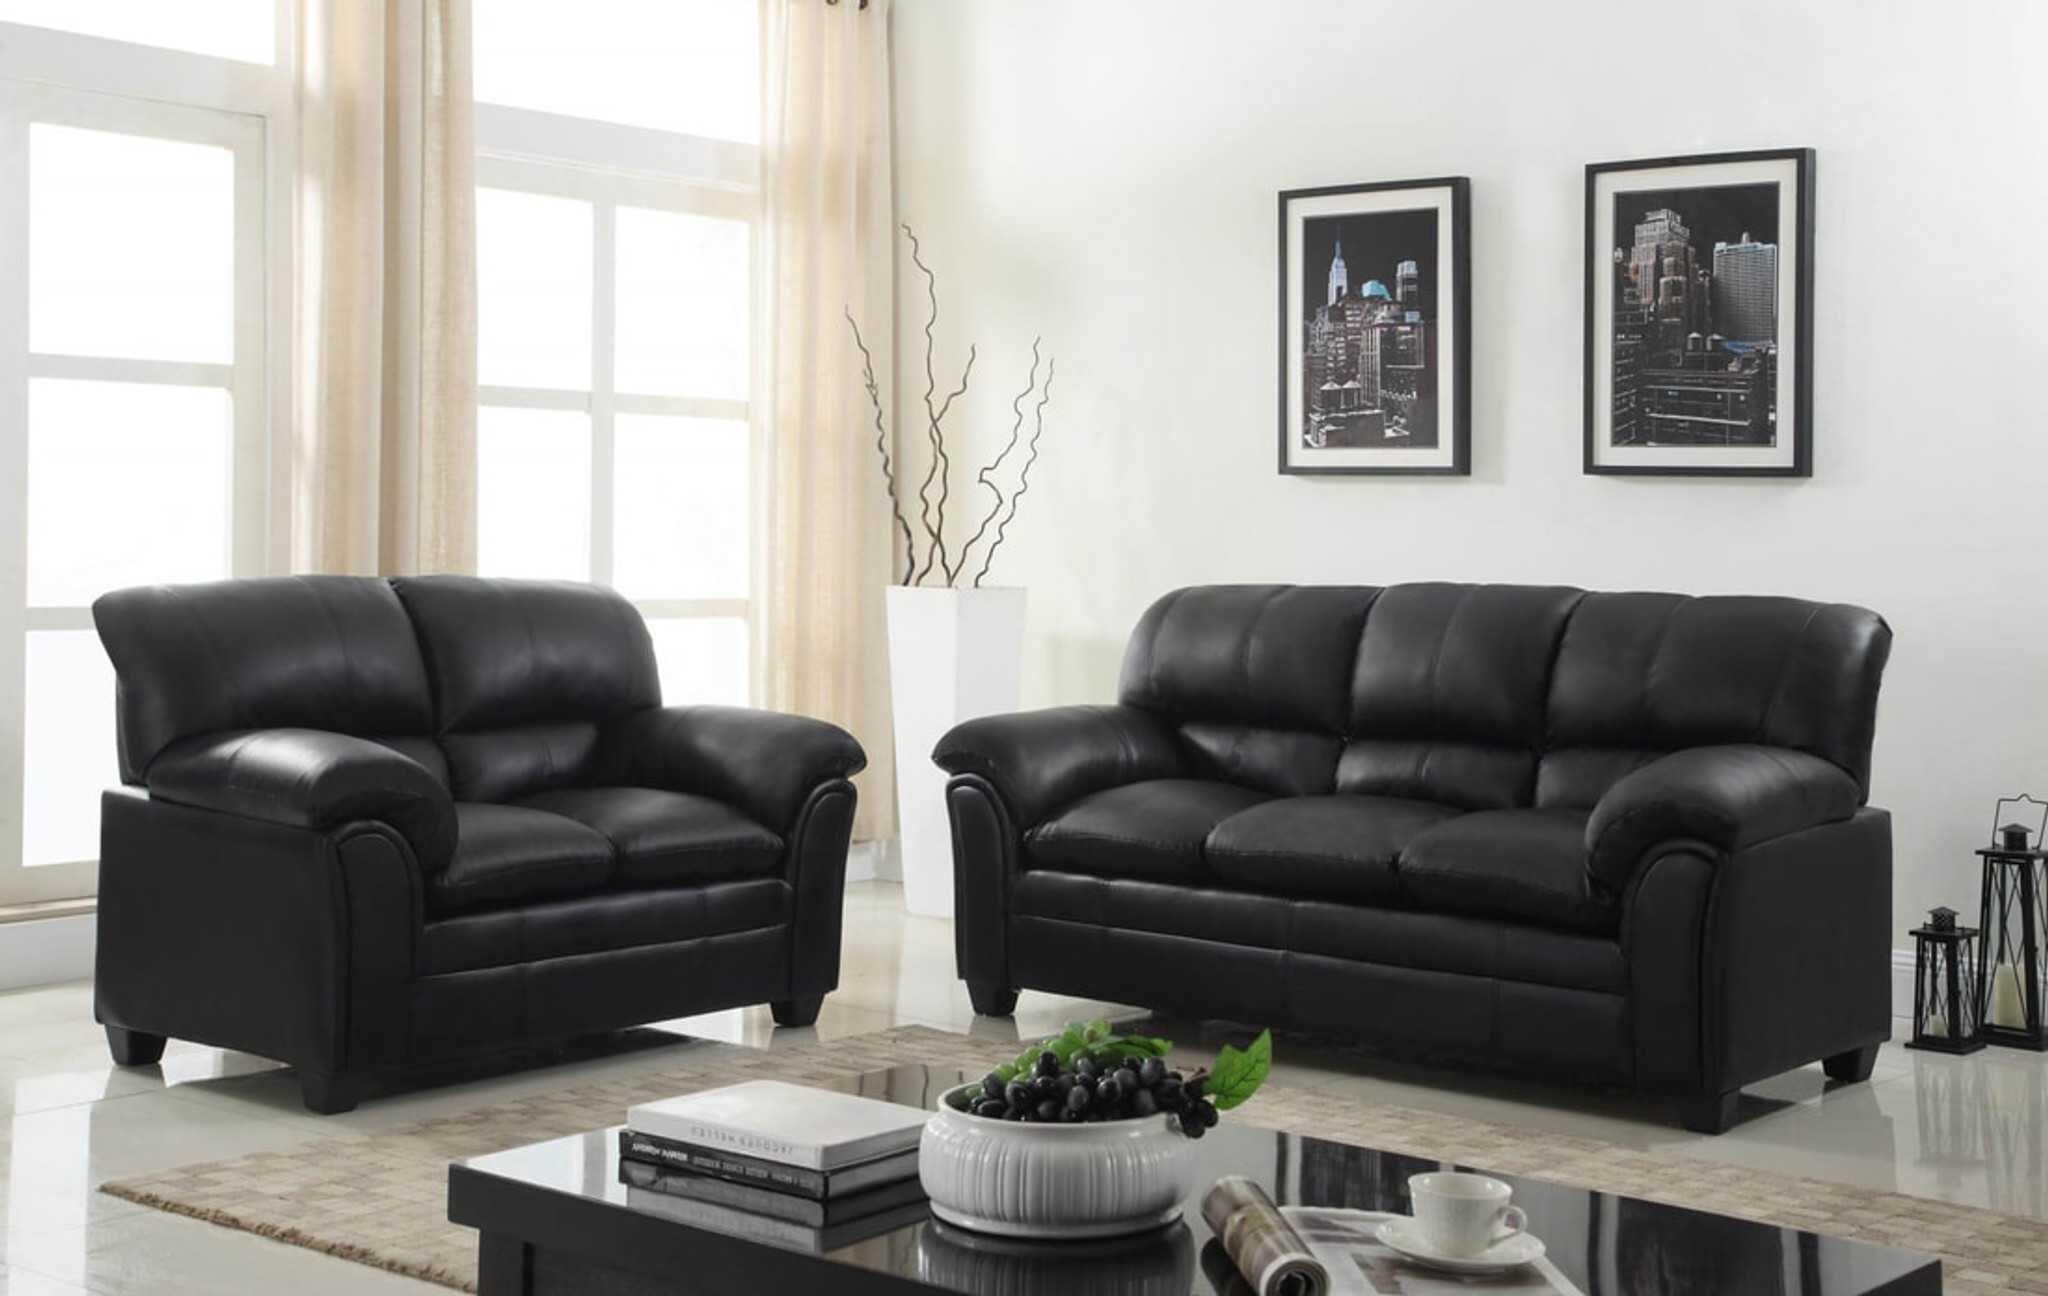 Picture of: Parker Black 2pcs Parker Black Sofa And Loveseat Set Collection By Happy Homes